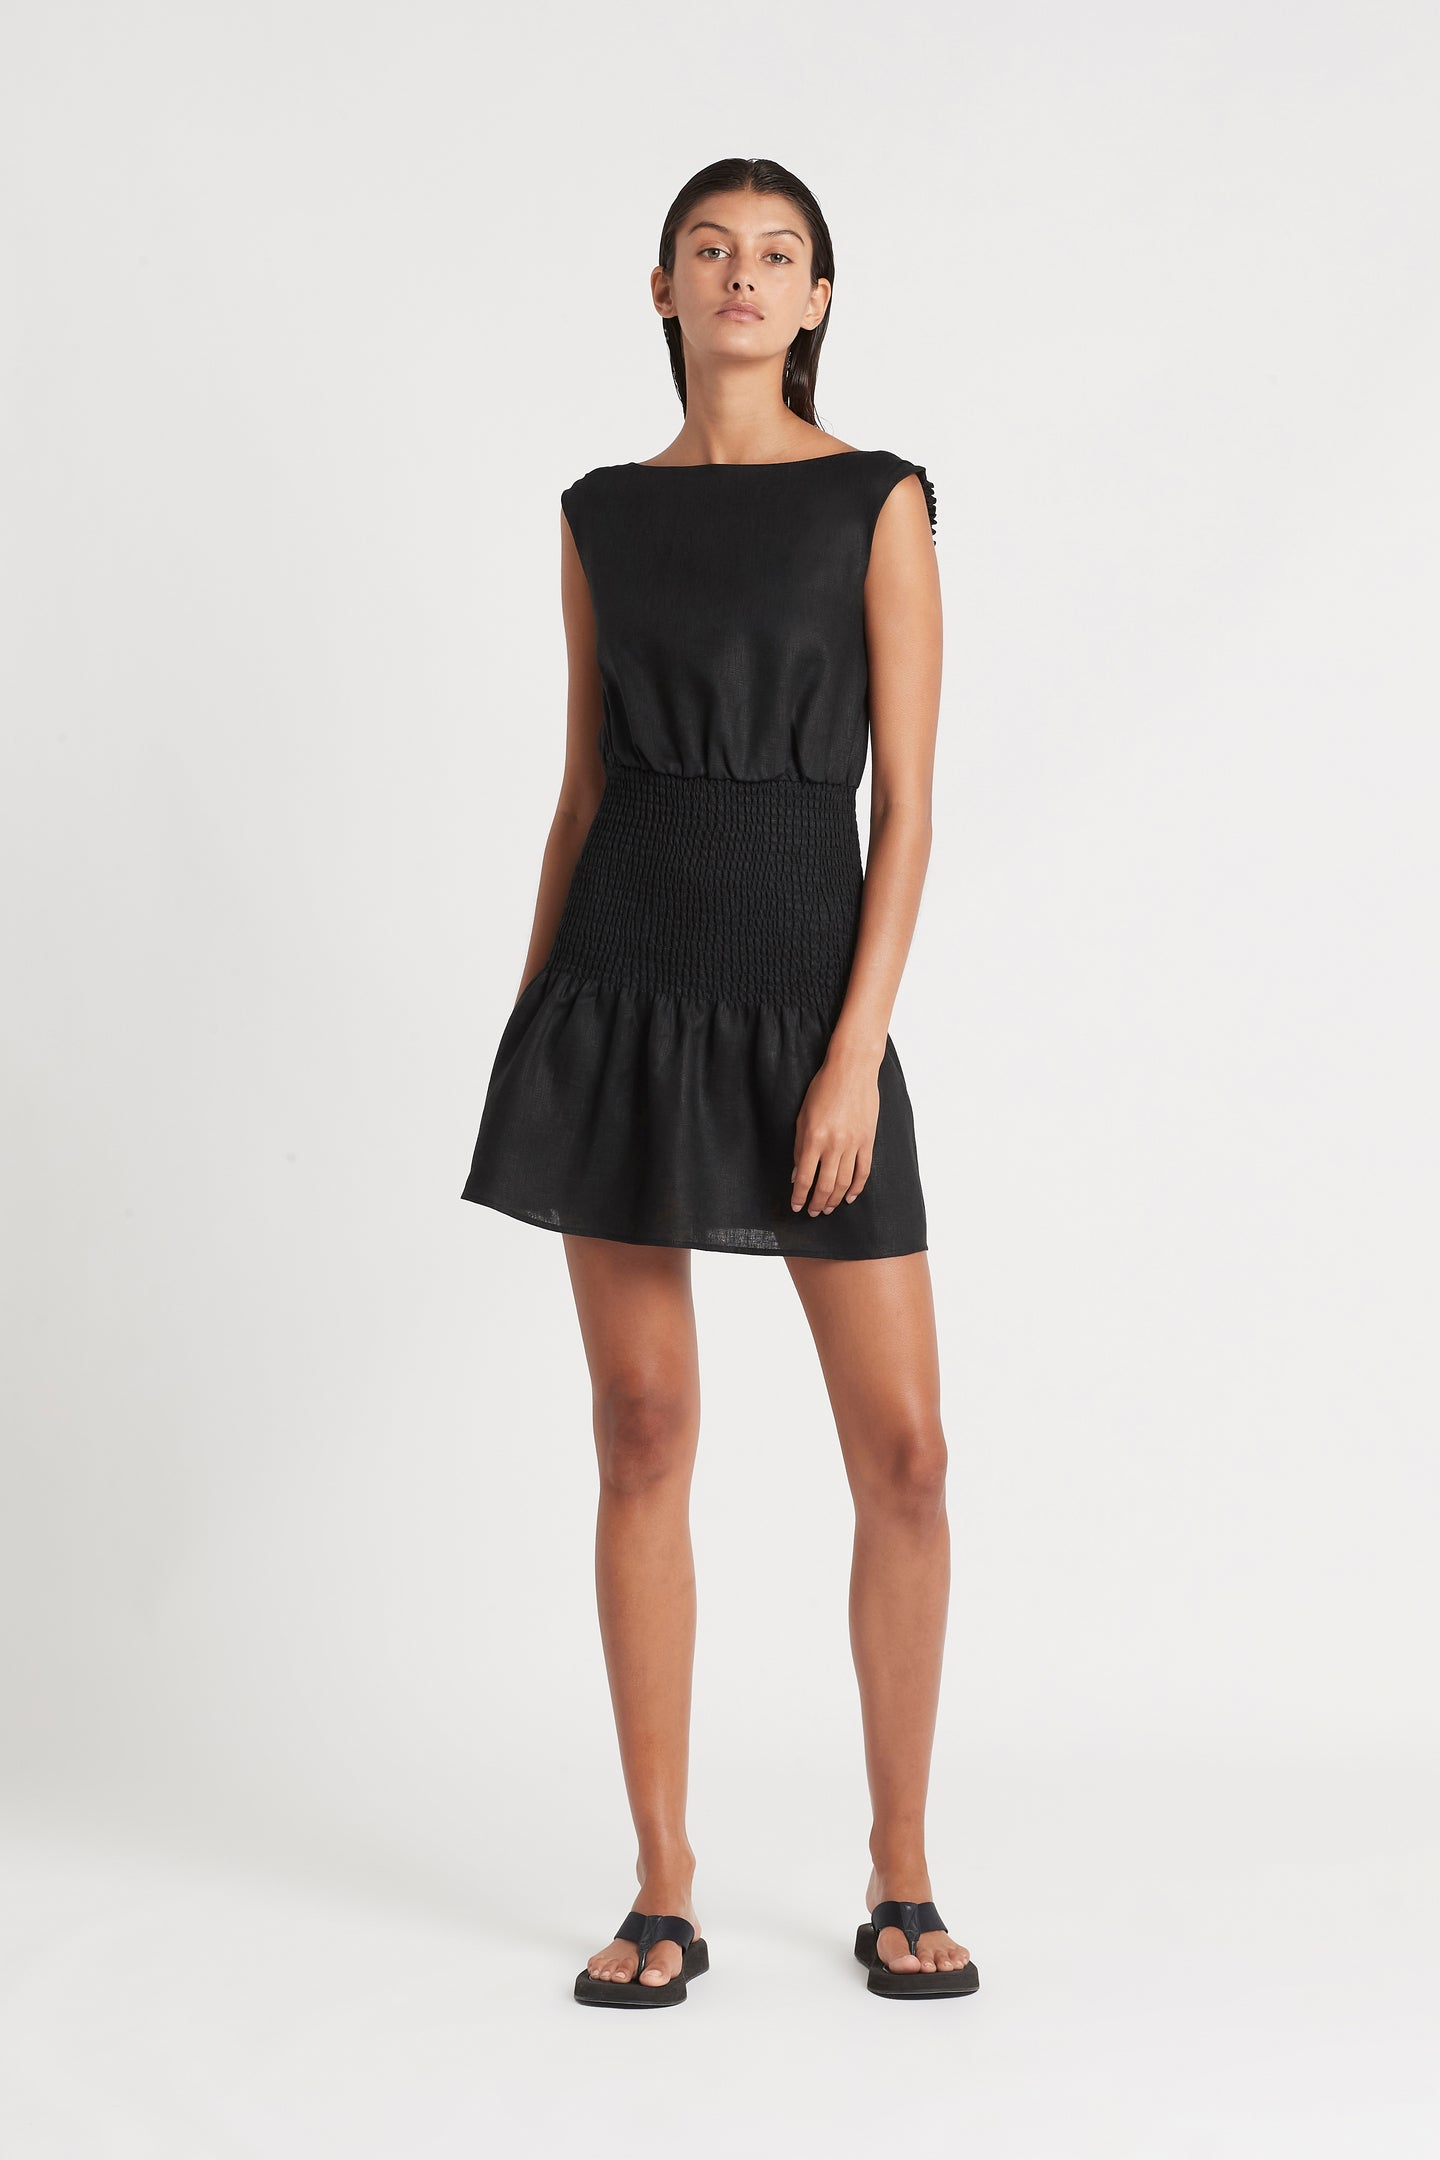 SIR the label LORENA OPEN BACK MINI DRESS BLACK